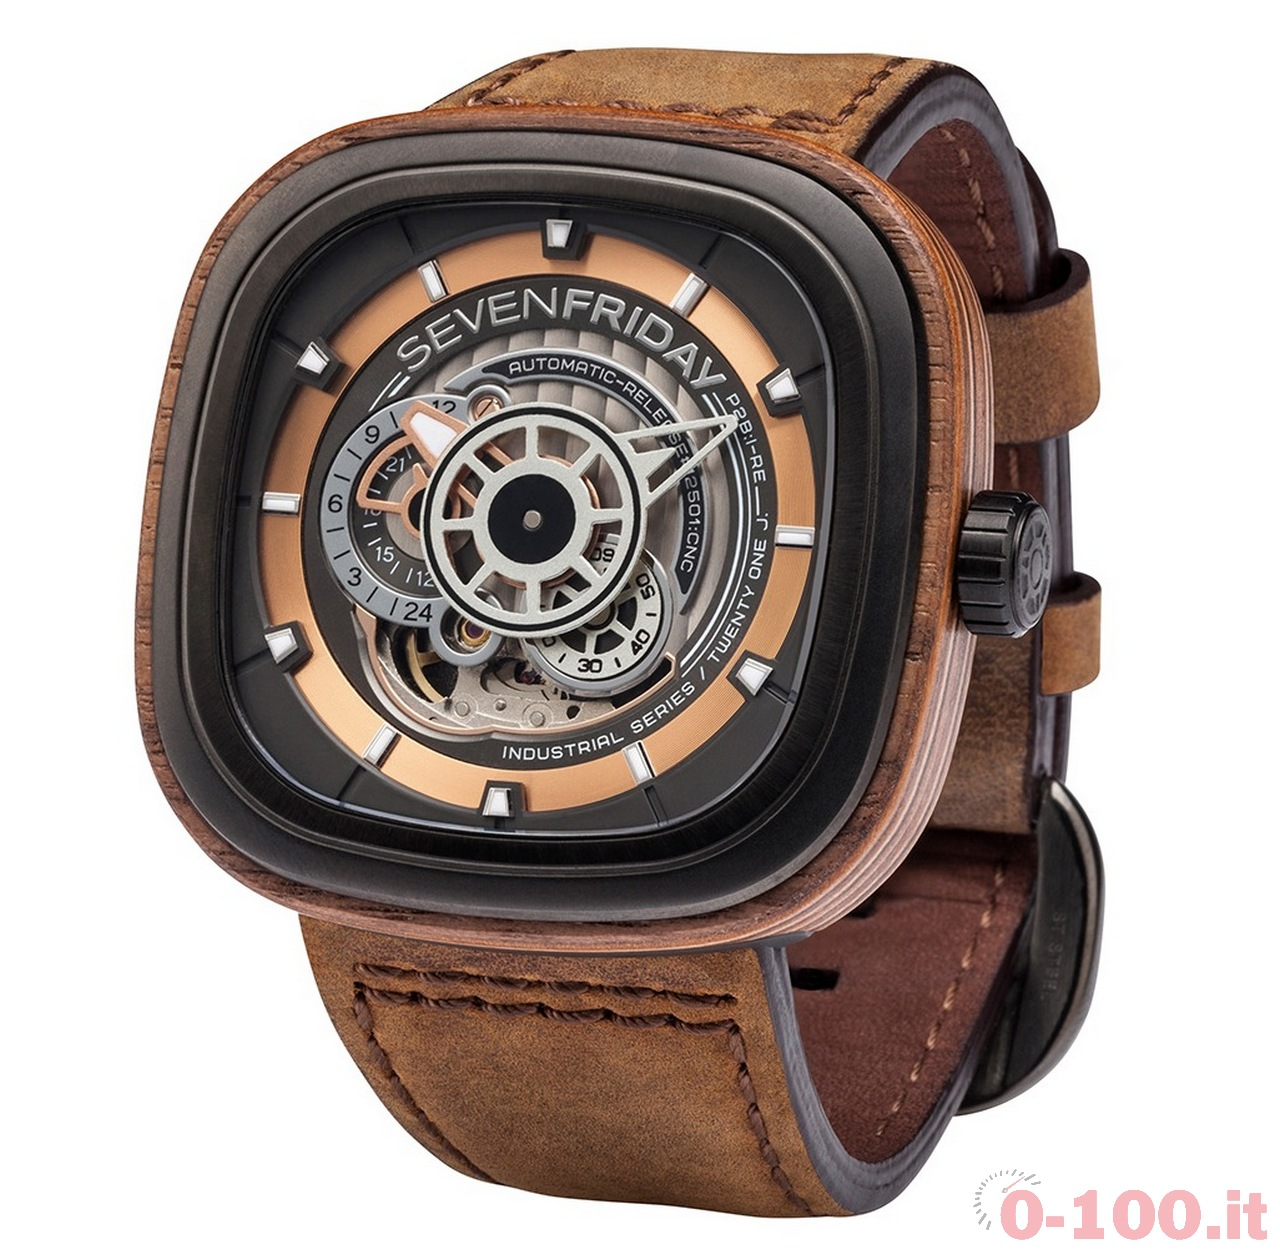 sevenfriday-p2b03-woody-limited-edition-price-prezzo_0-1006